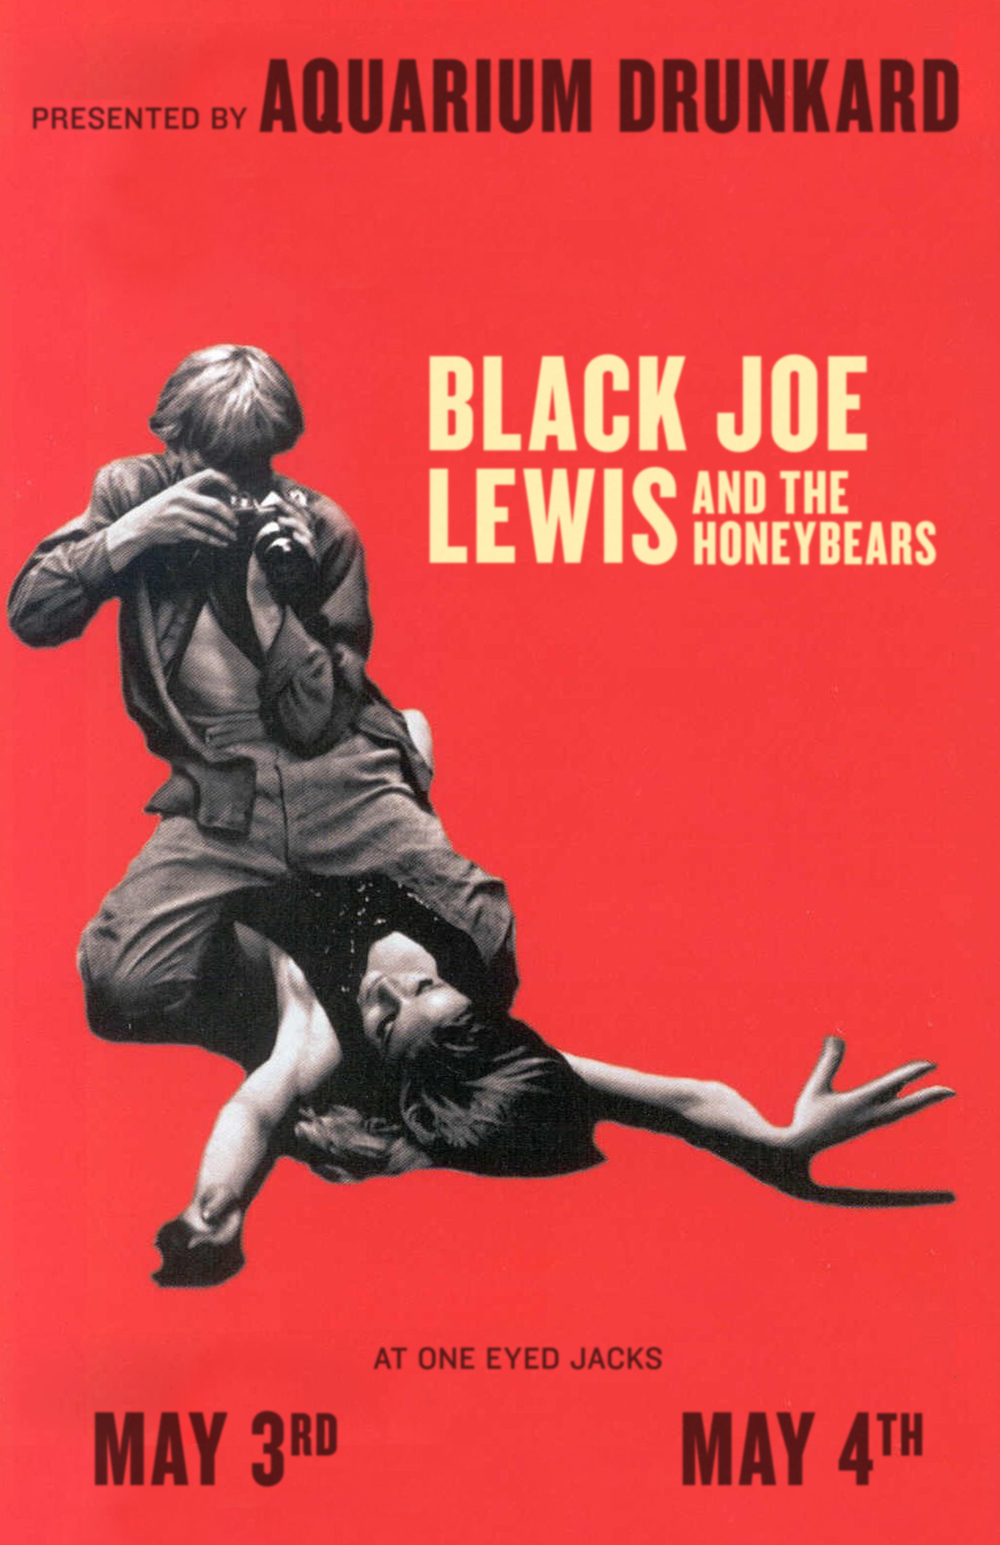 Black-Joe-Lewis-Blow-up-11x17.jpg